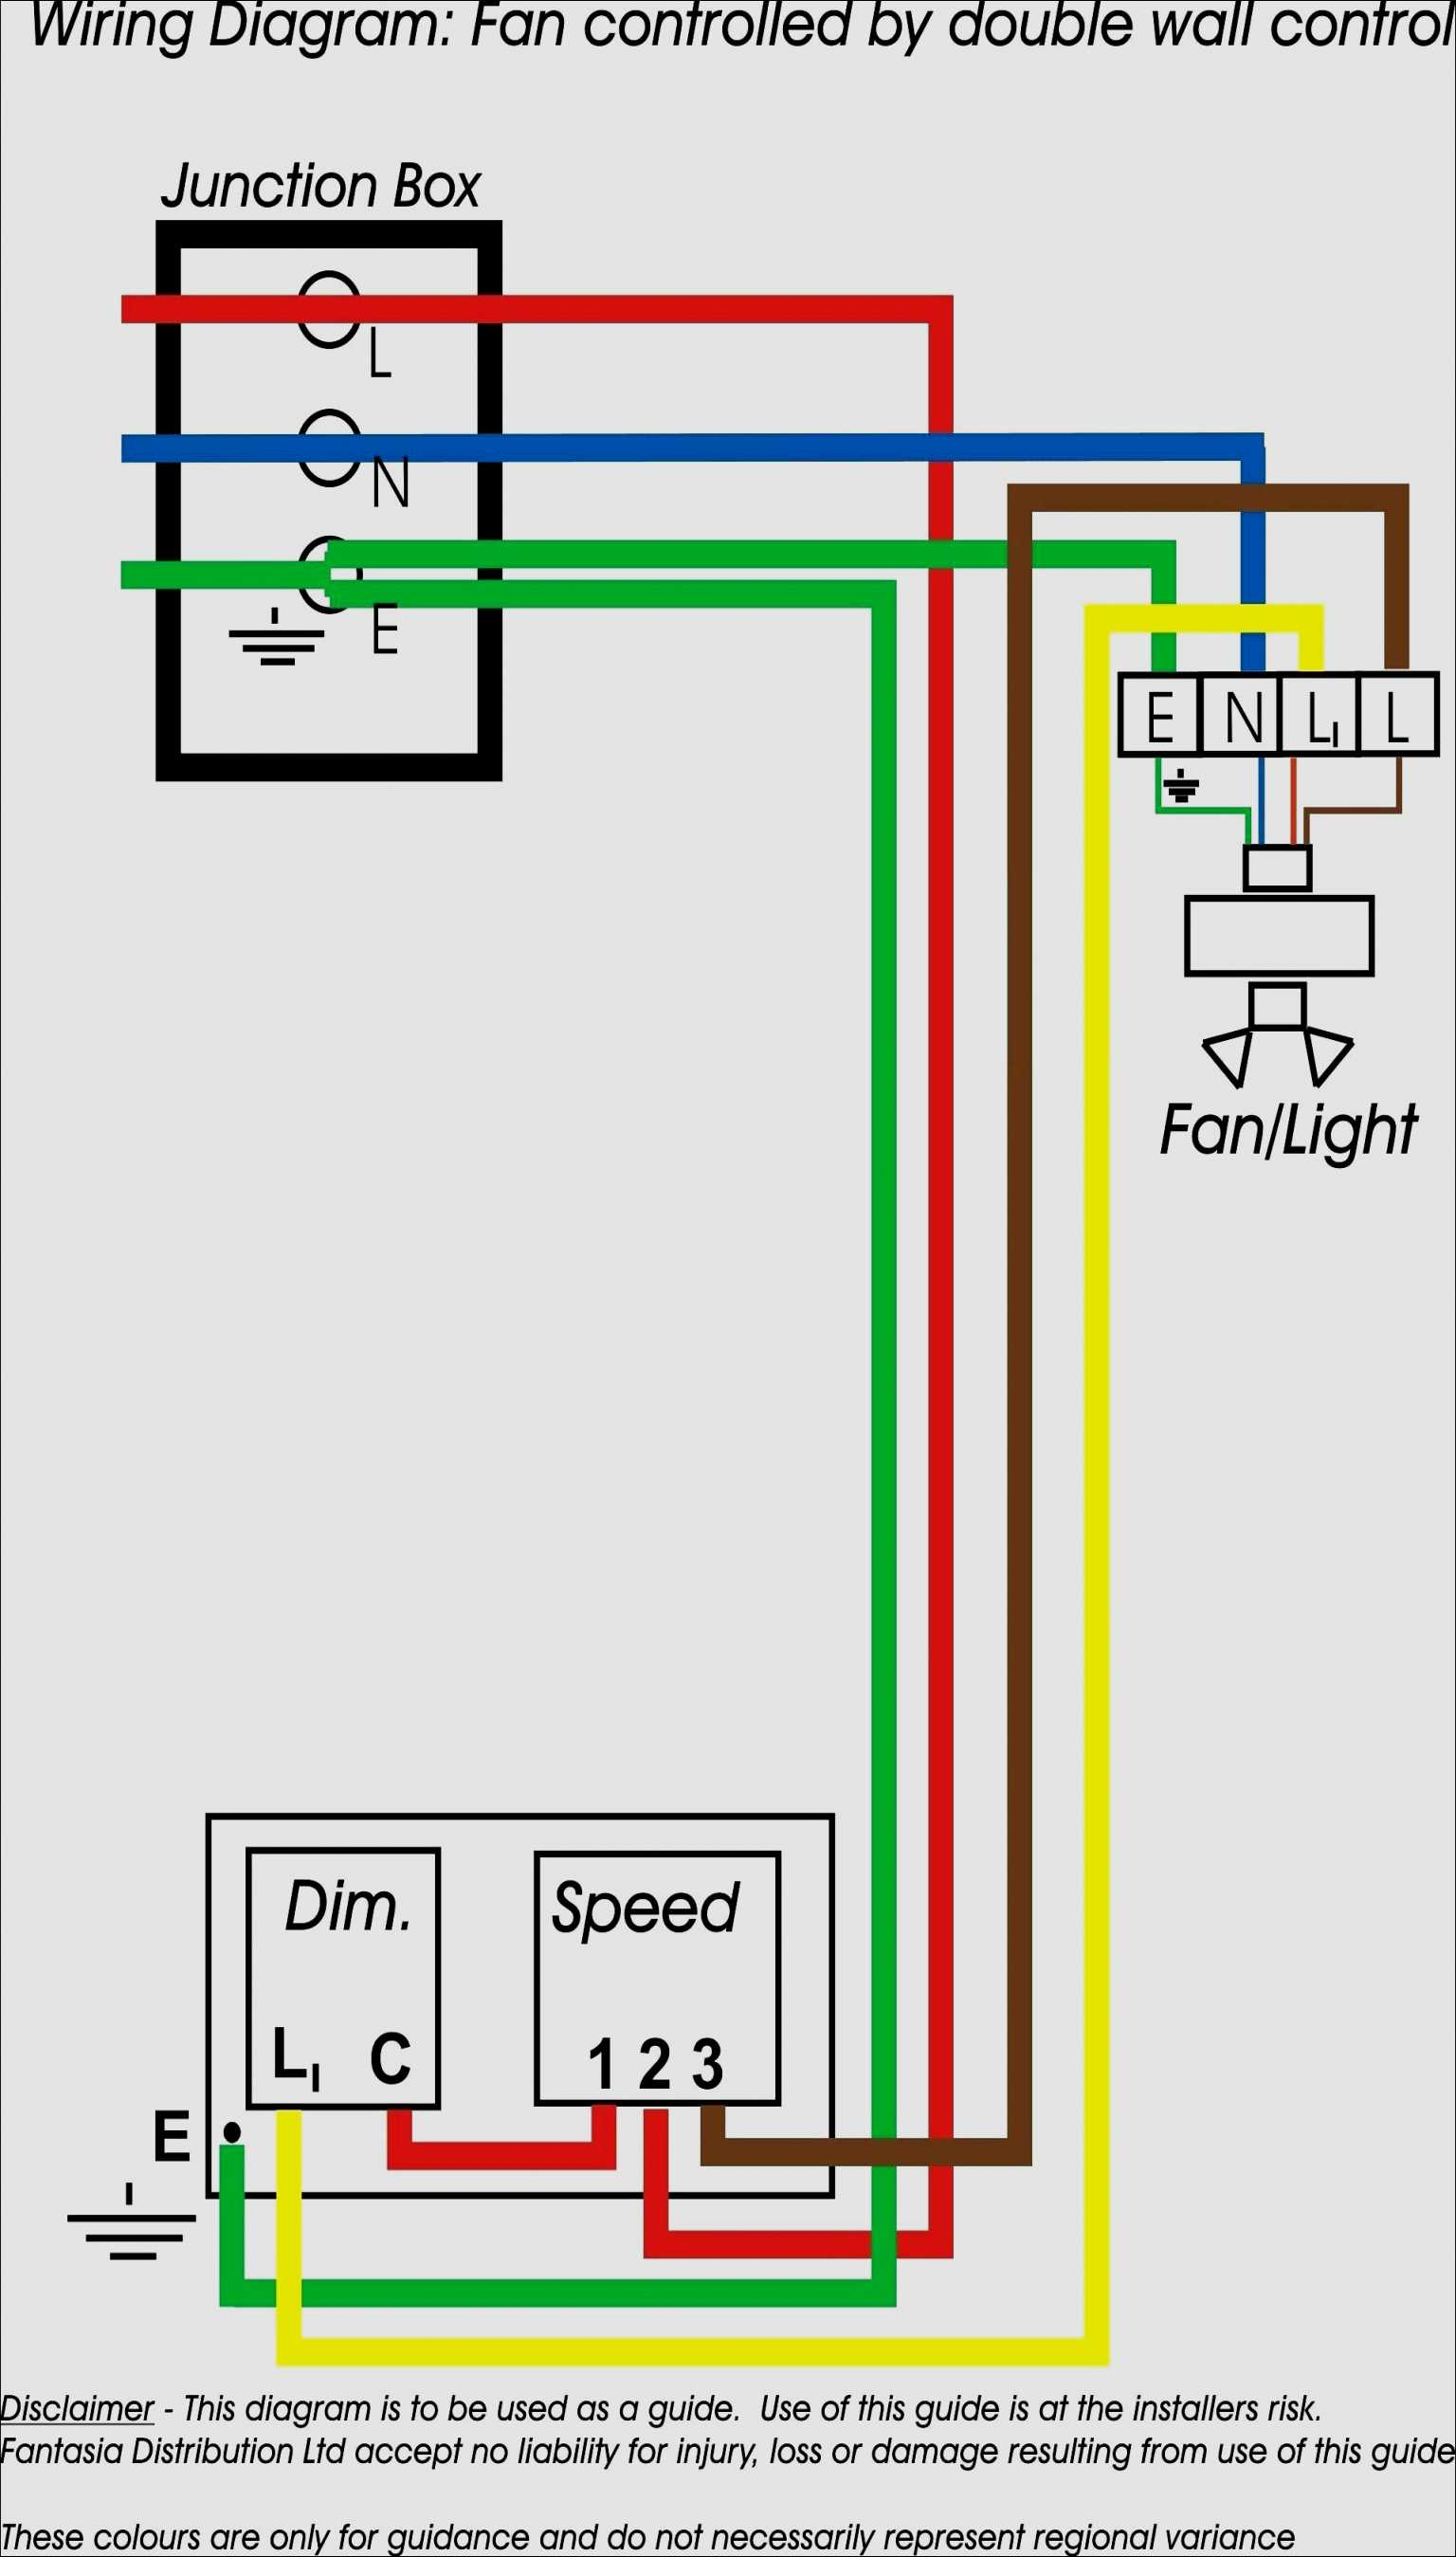 Trailer Junction Box Wiring Diagram - Utility Trailer Wiring Diagram